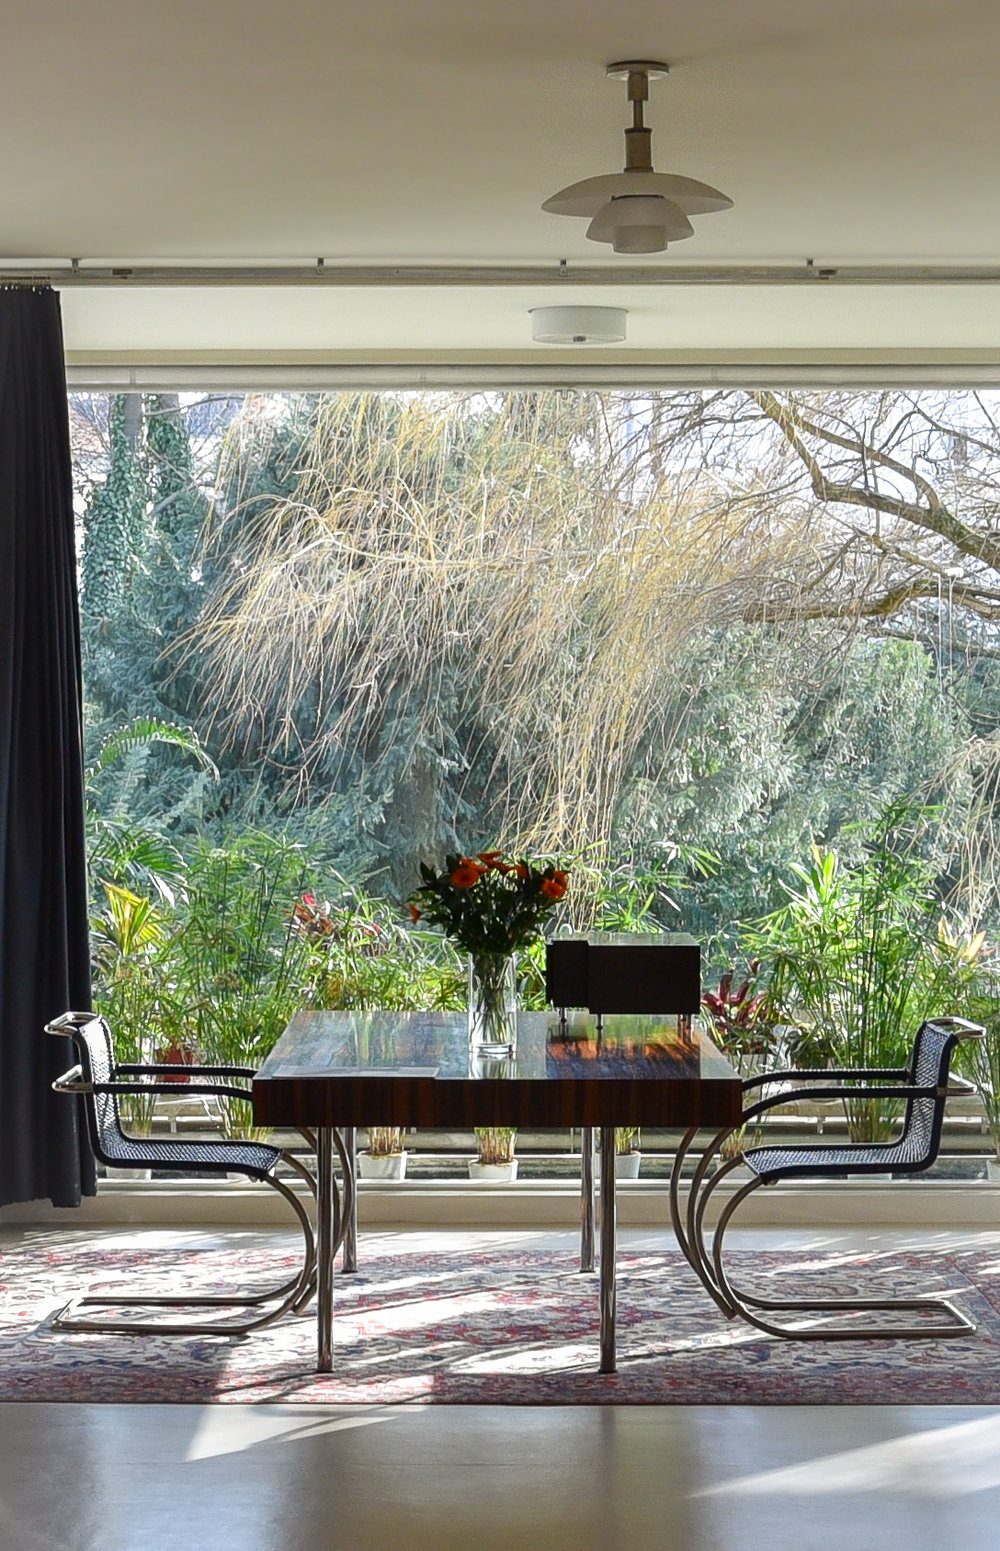 Villa Tugendhat — The Wood House